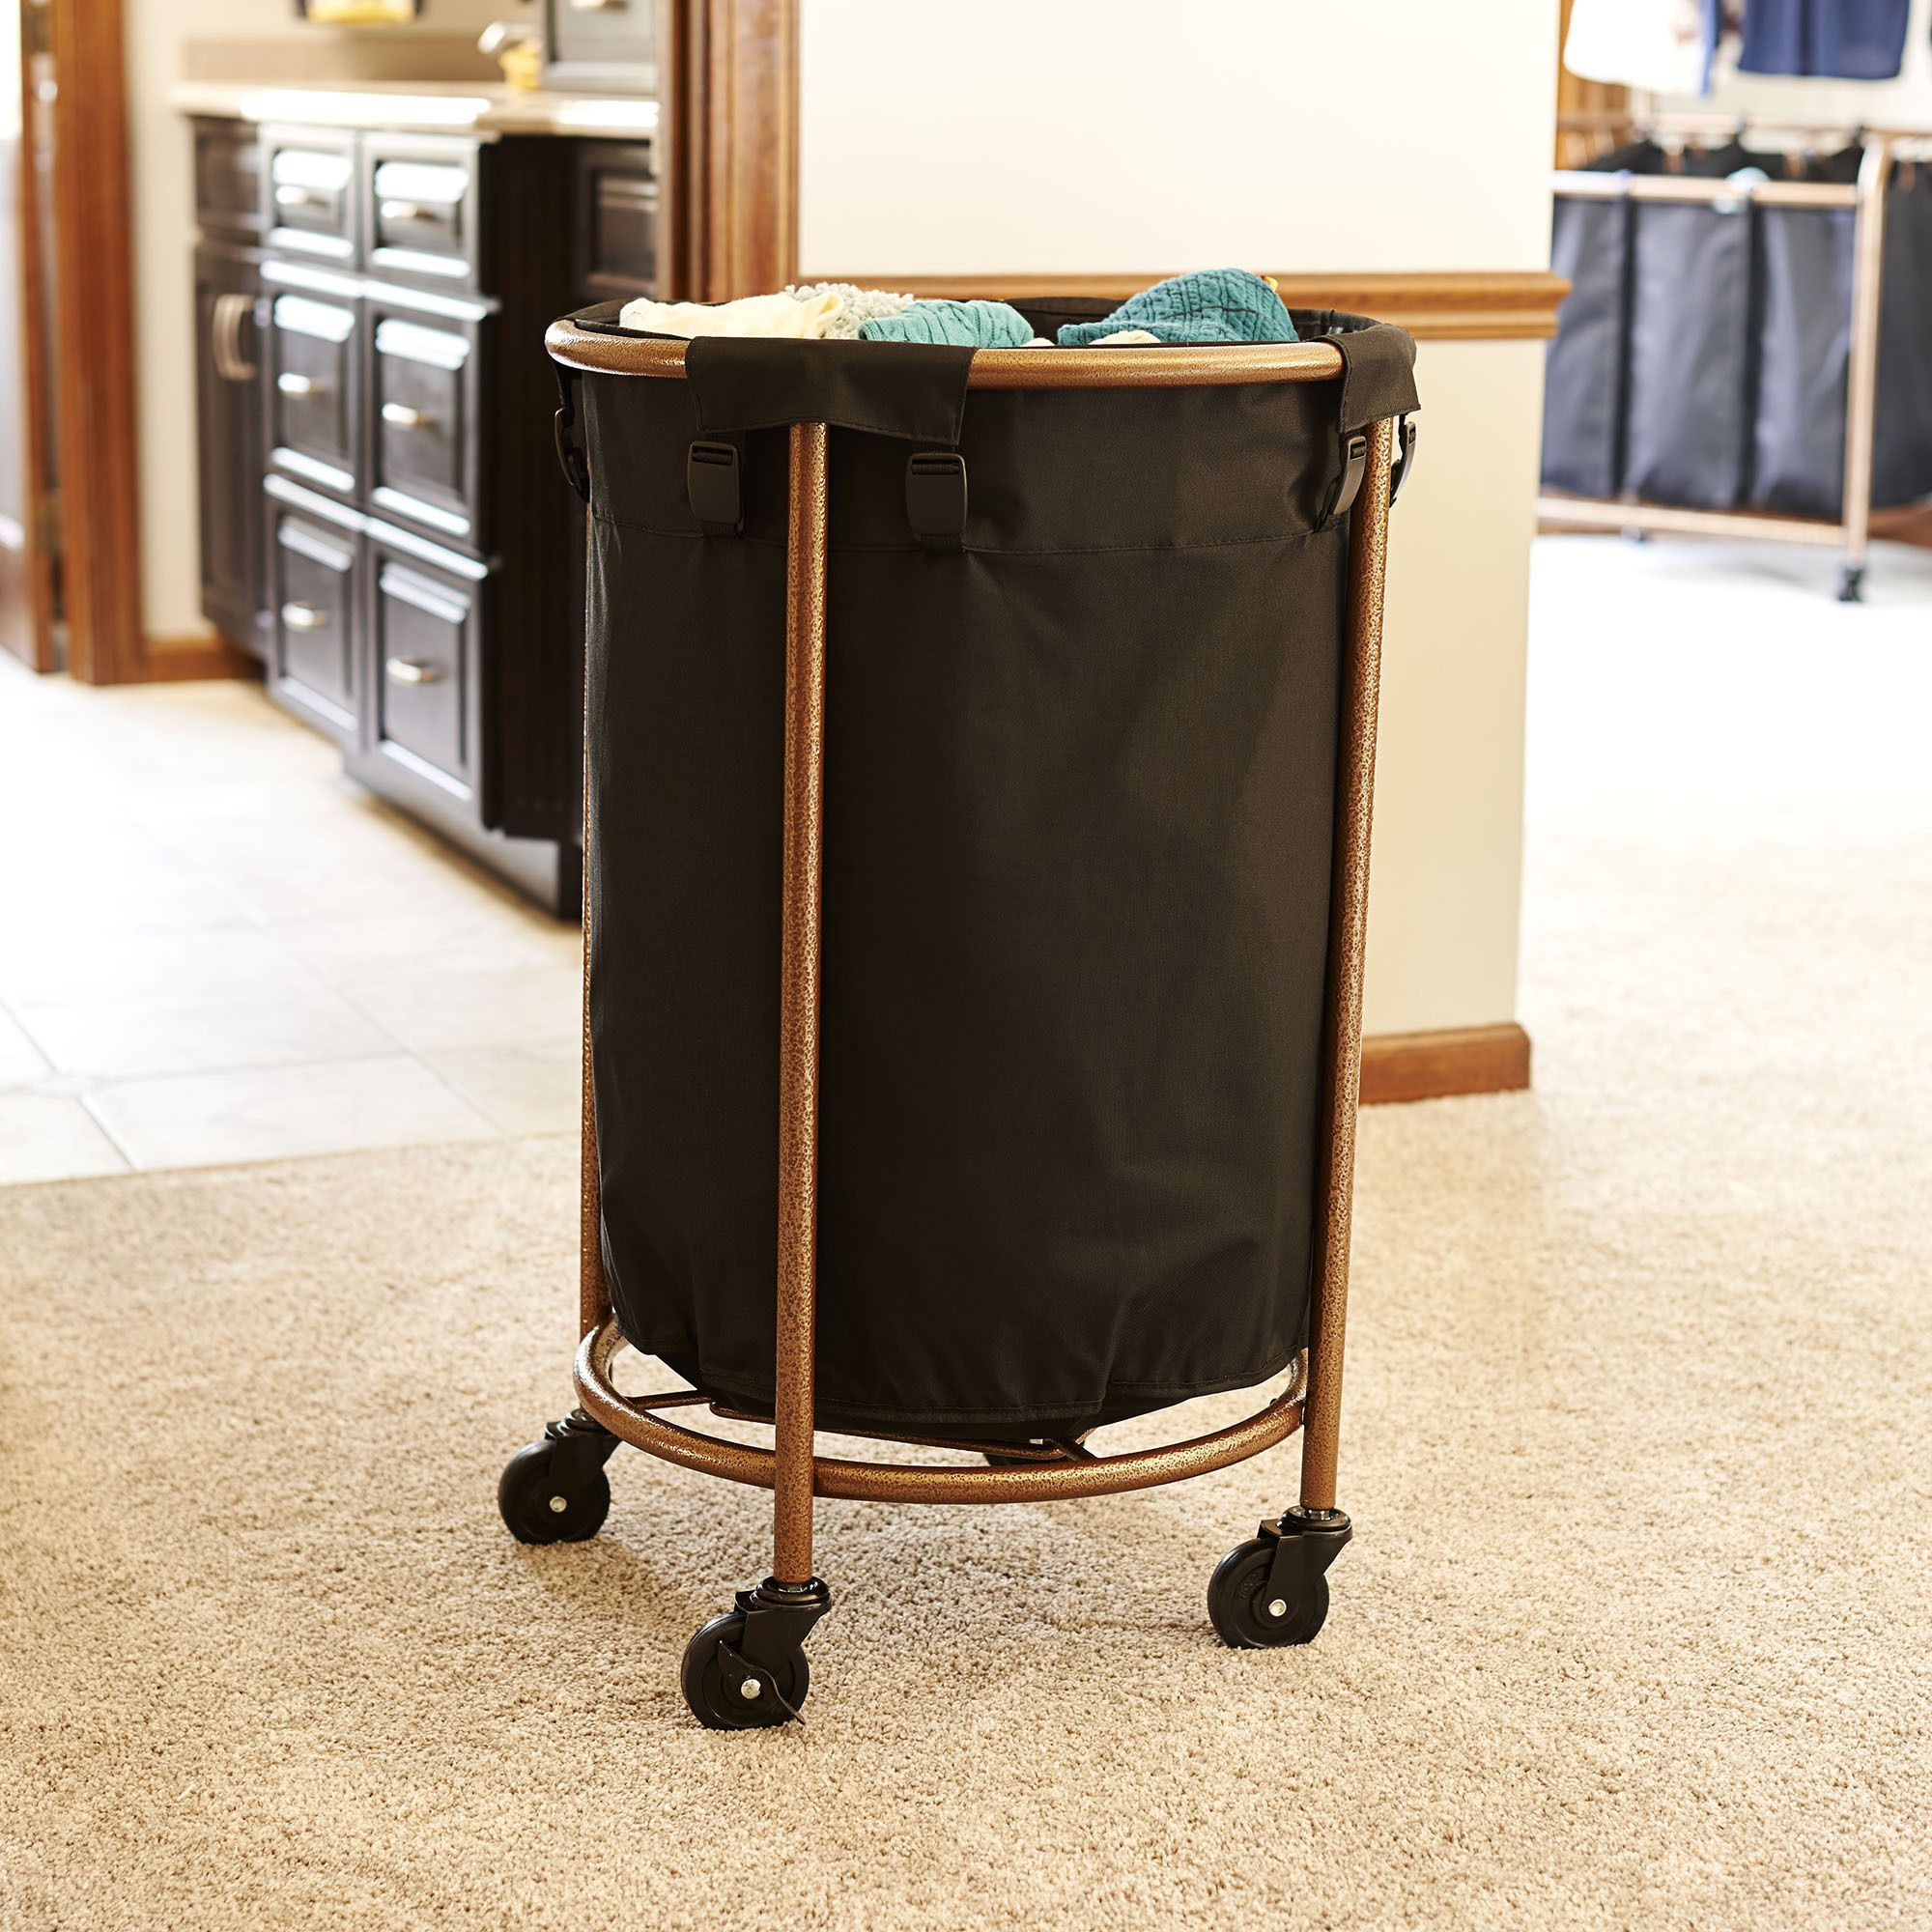 Copper And Black Round Laundry Hamper Round Laundry Hamper